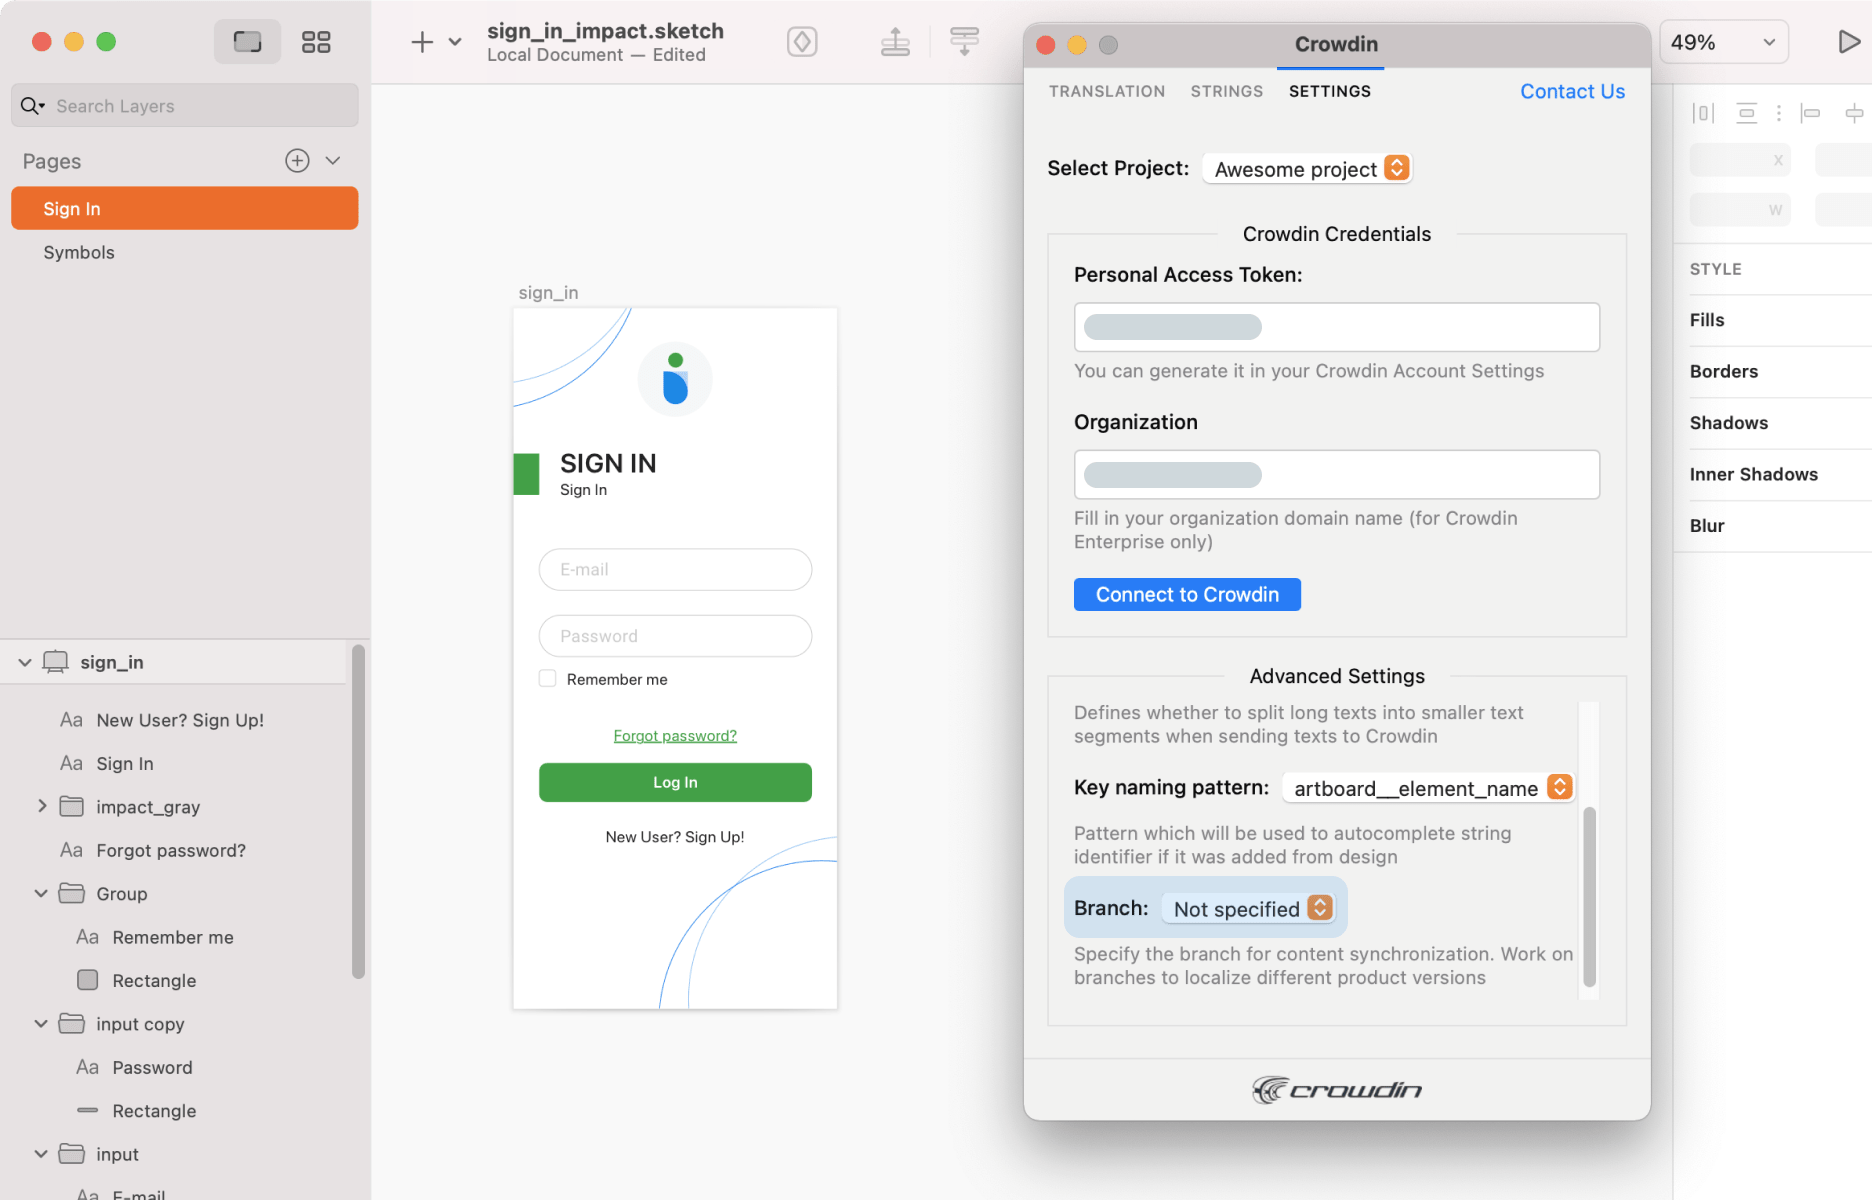 Crowdin Plugin for Sketch